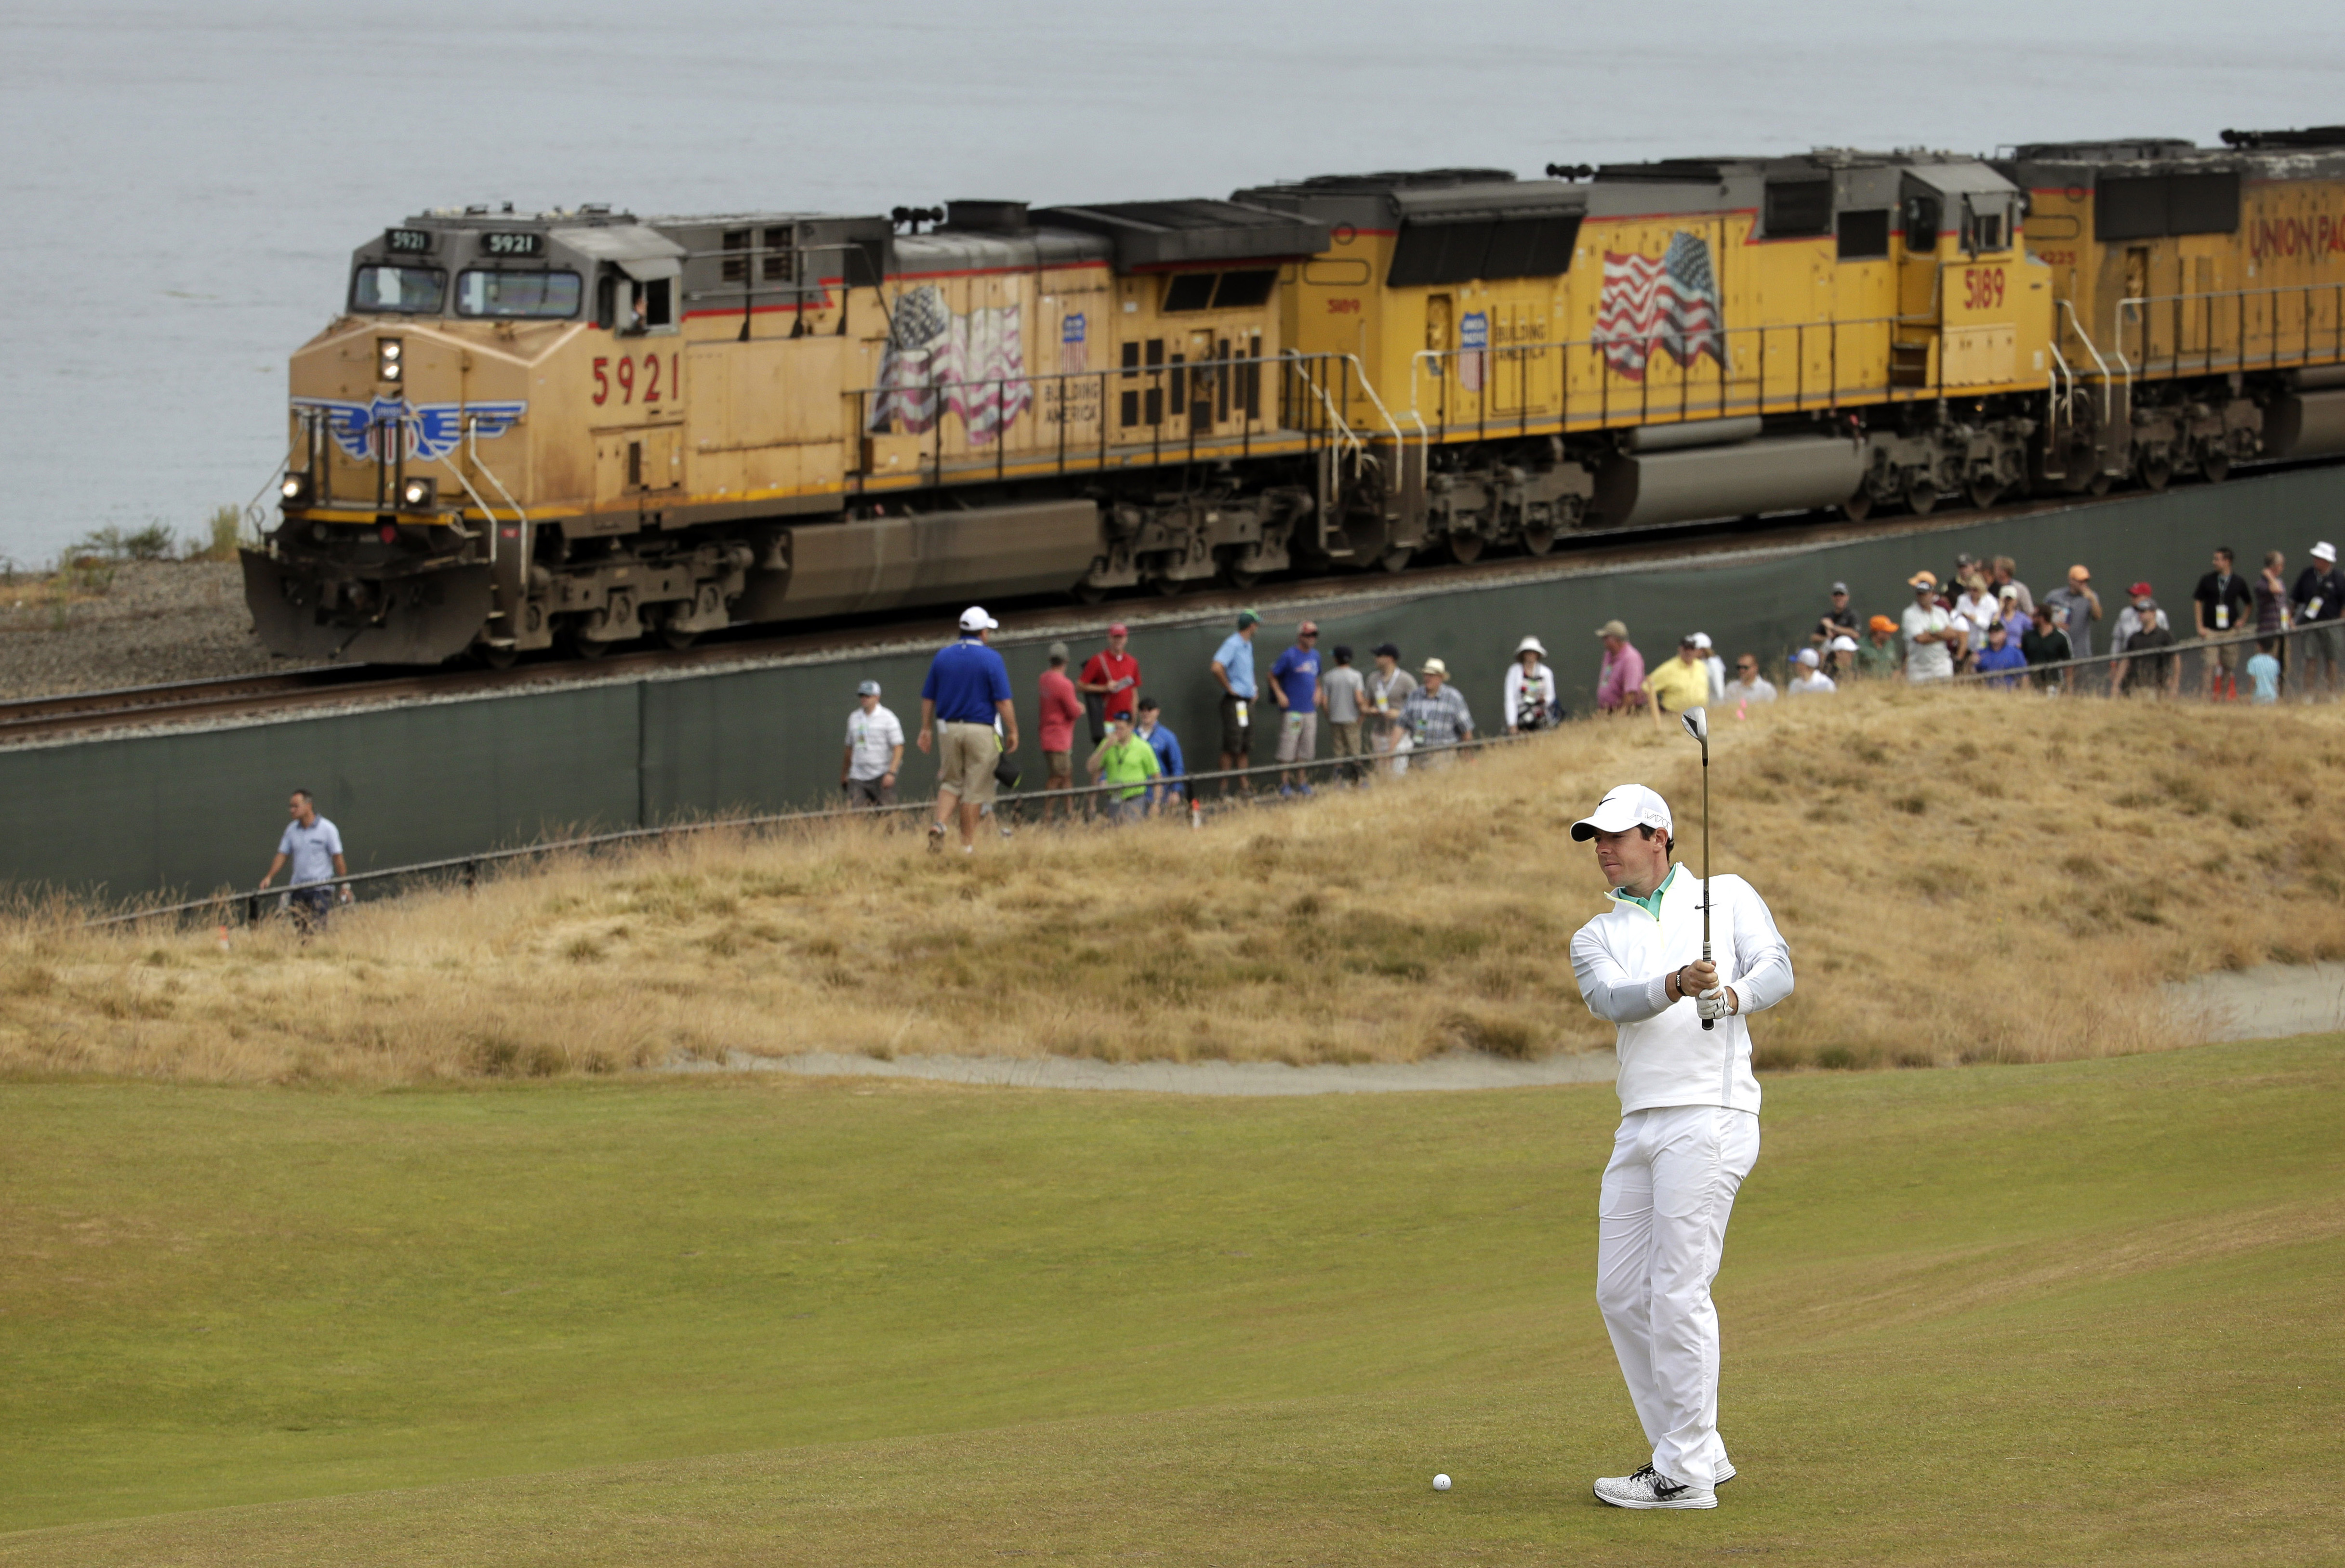 Rory McIlroy, of Northern Ireland, prepares to hit from the 16th fairway as a fright train rolls past during the first round of the U.S. Open golf tournament at Chambers Bay on Thursday, June 18, 2015 in University Place, Wash. (AP Photo/Charlie Riedel)